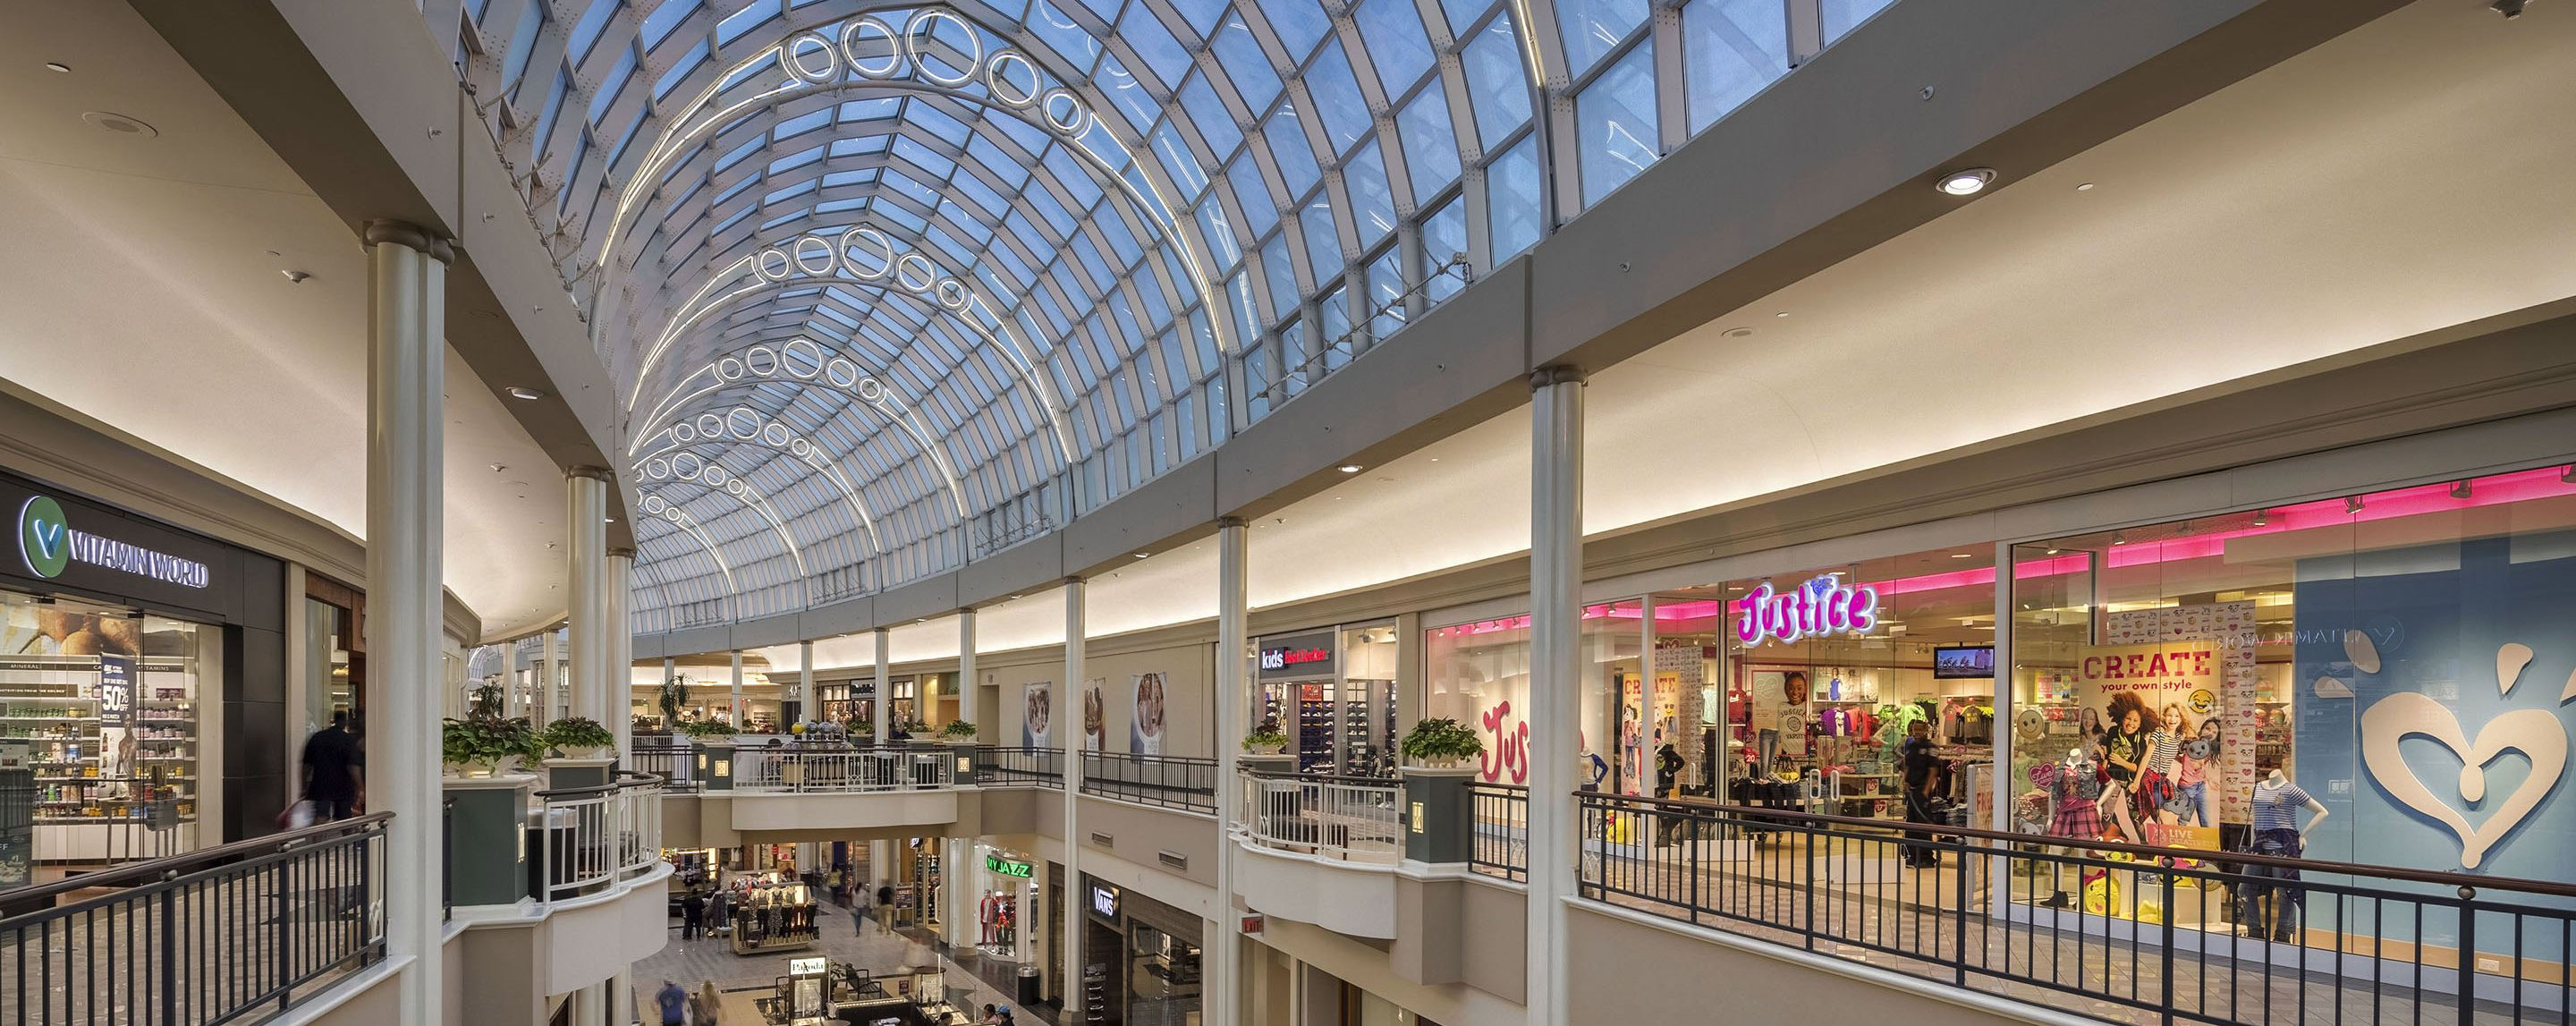 An interior shot of a mall with a curved glass ceiling. Several stores are on display, including Justice.